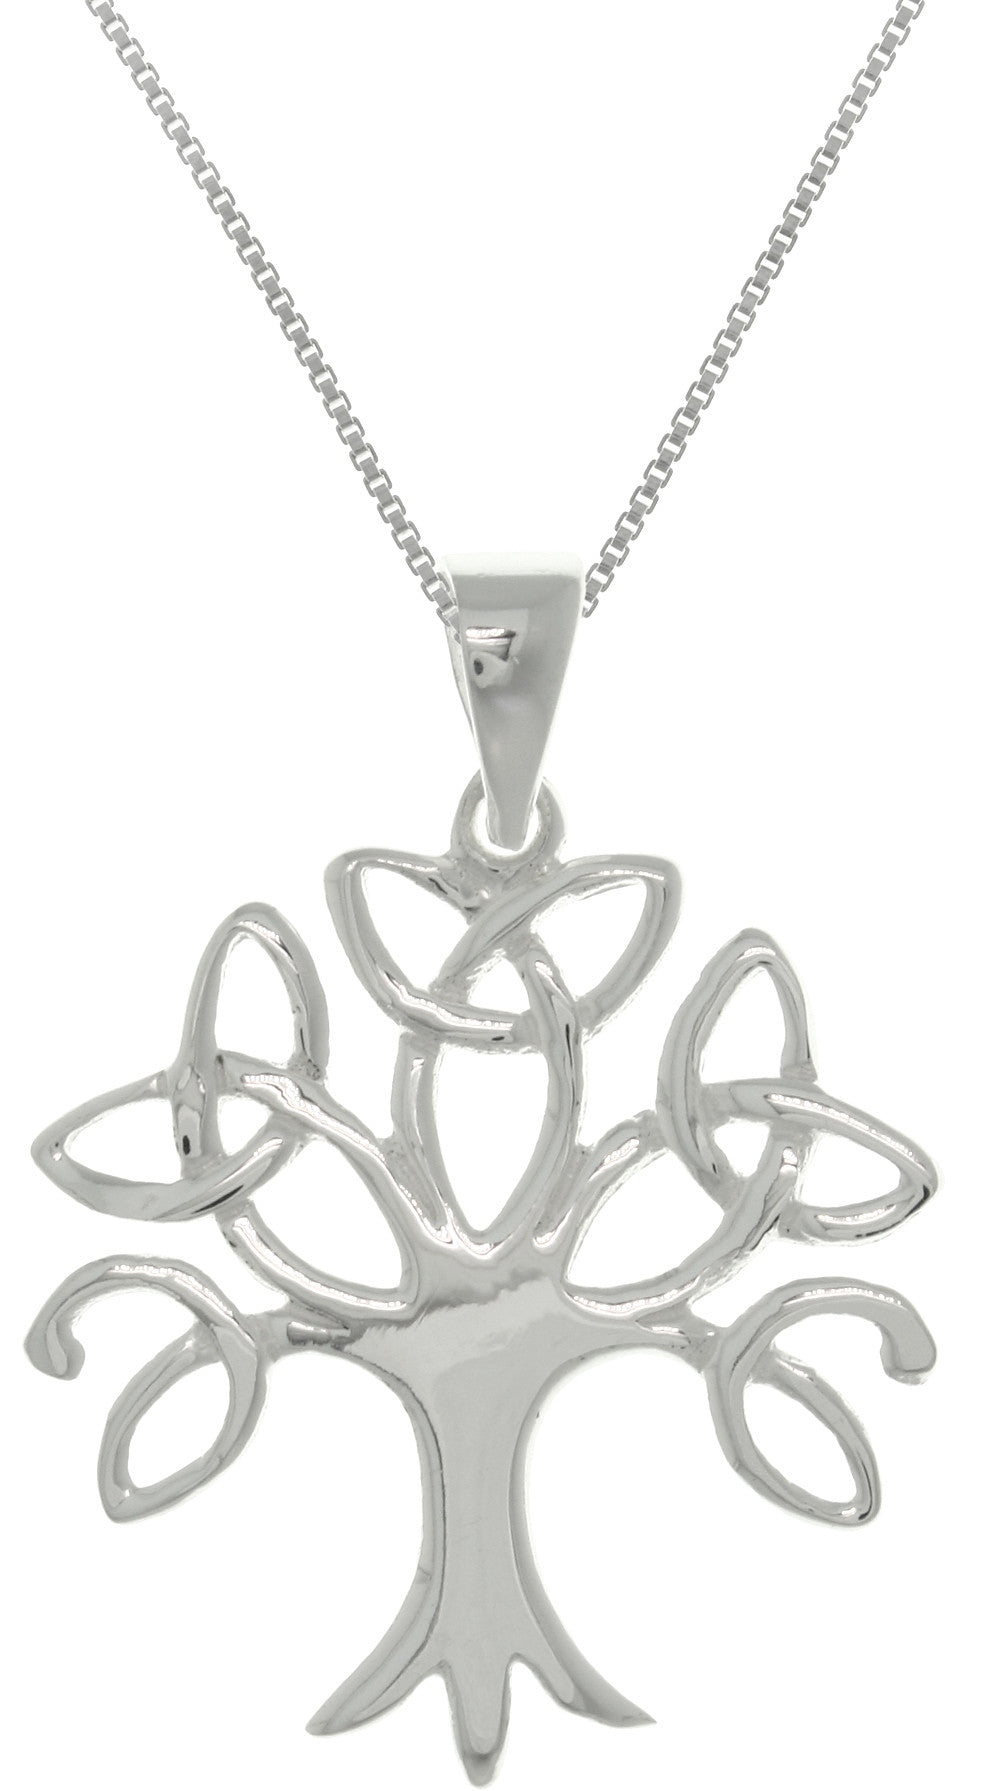 Jewelry Trends Sterling Silver Tree of Life Celtic Trinity Knot Branch Pendant on 18 Inch Box Chain Necklace